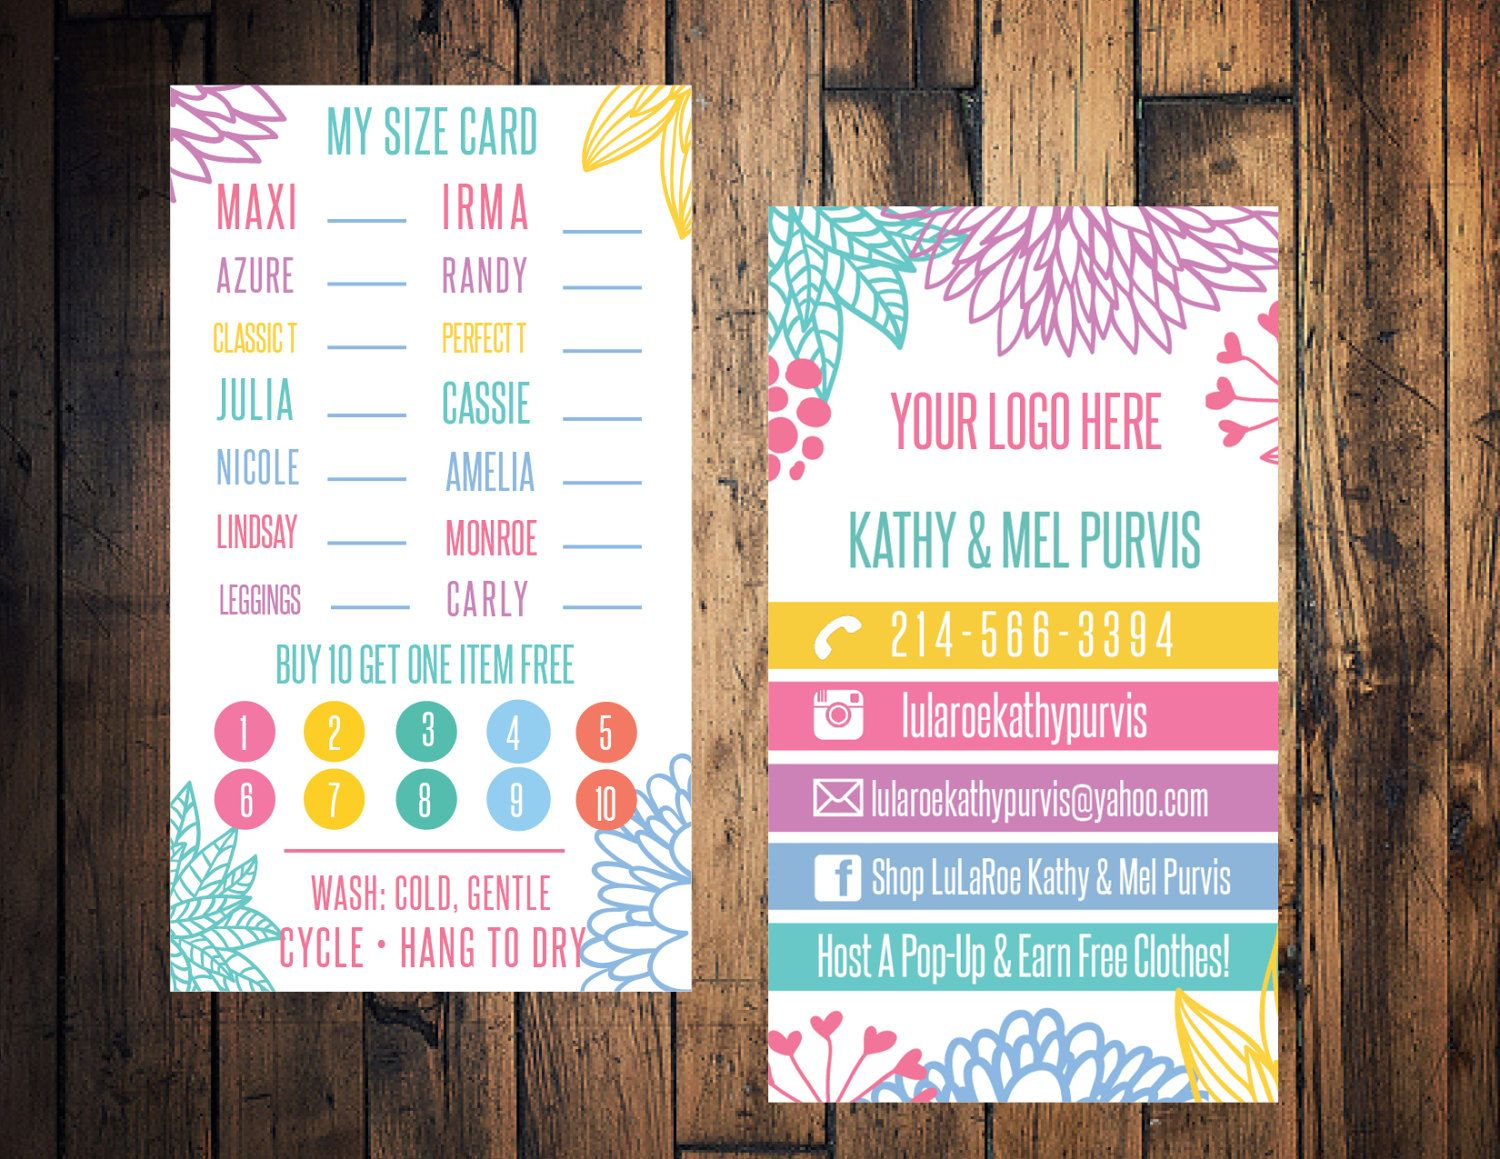 Floral punch card business size card clothing style card business floral punch card business size card clothing style card business card clothing reheart Images